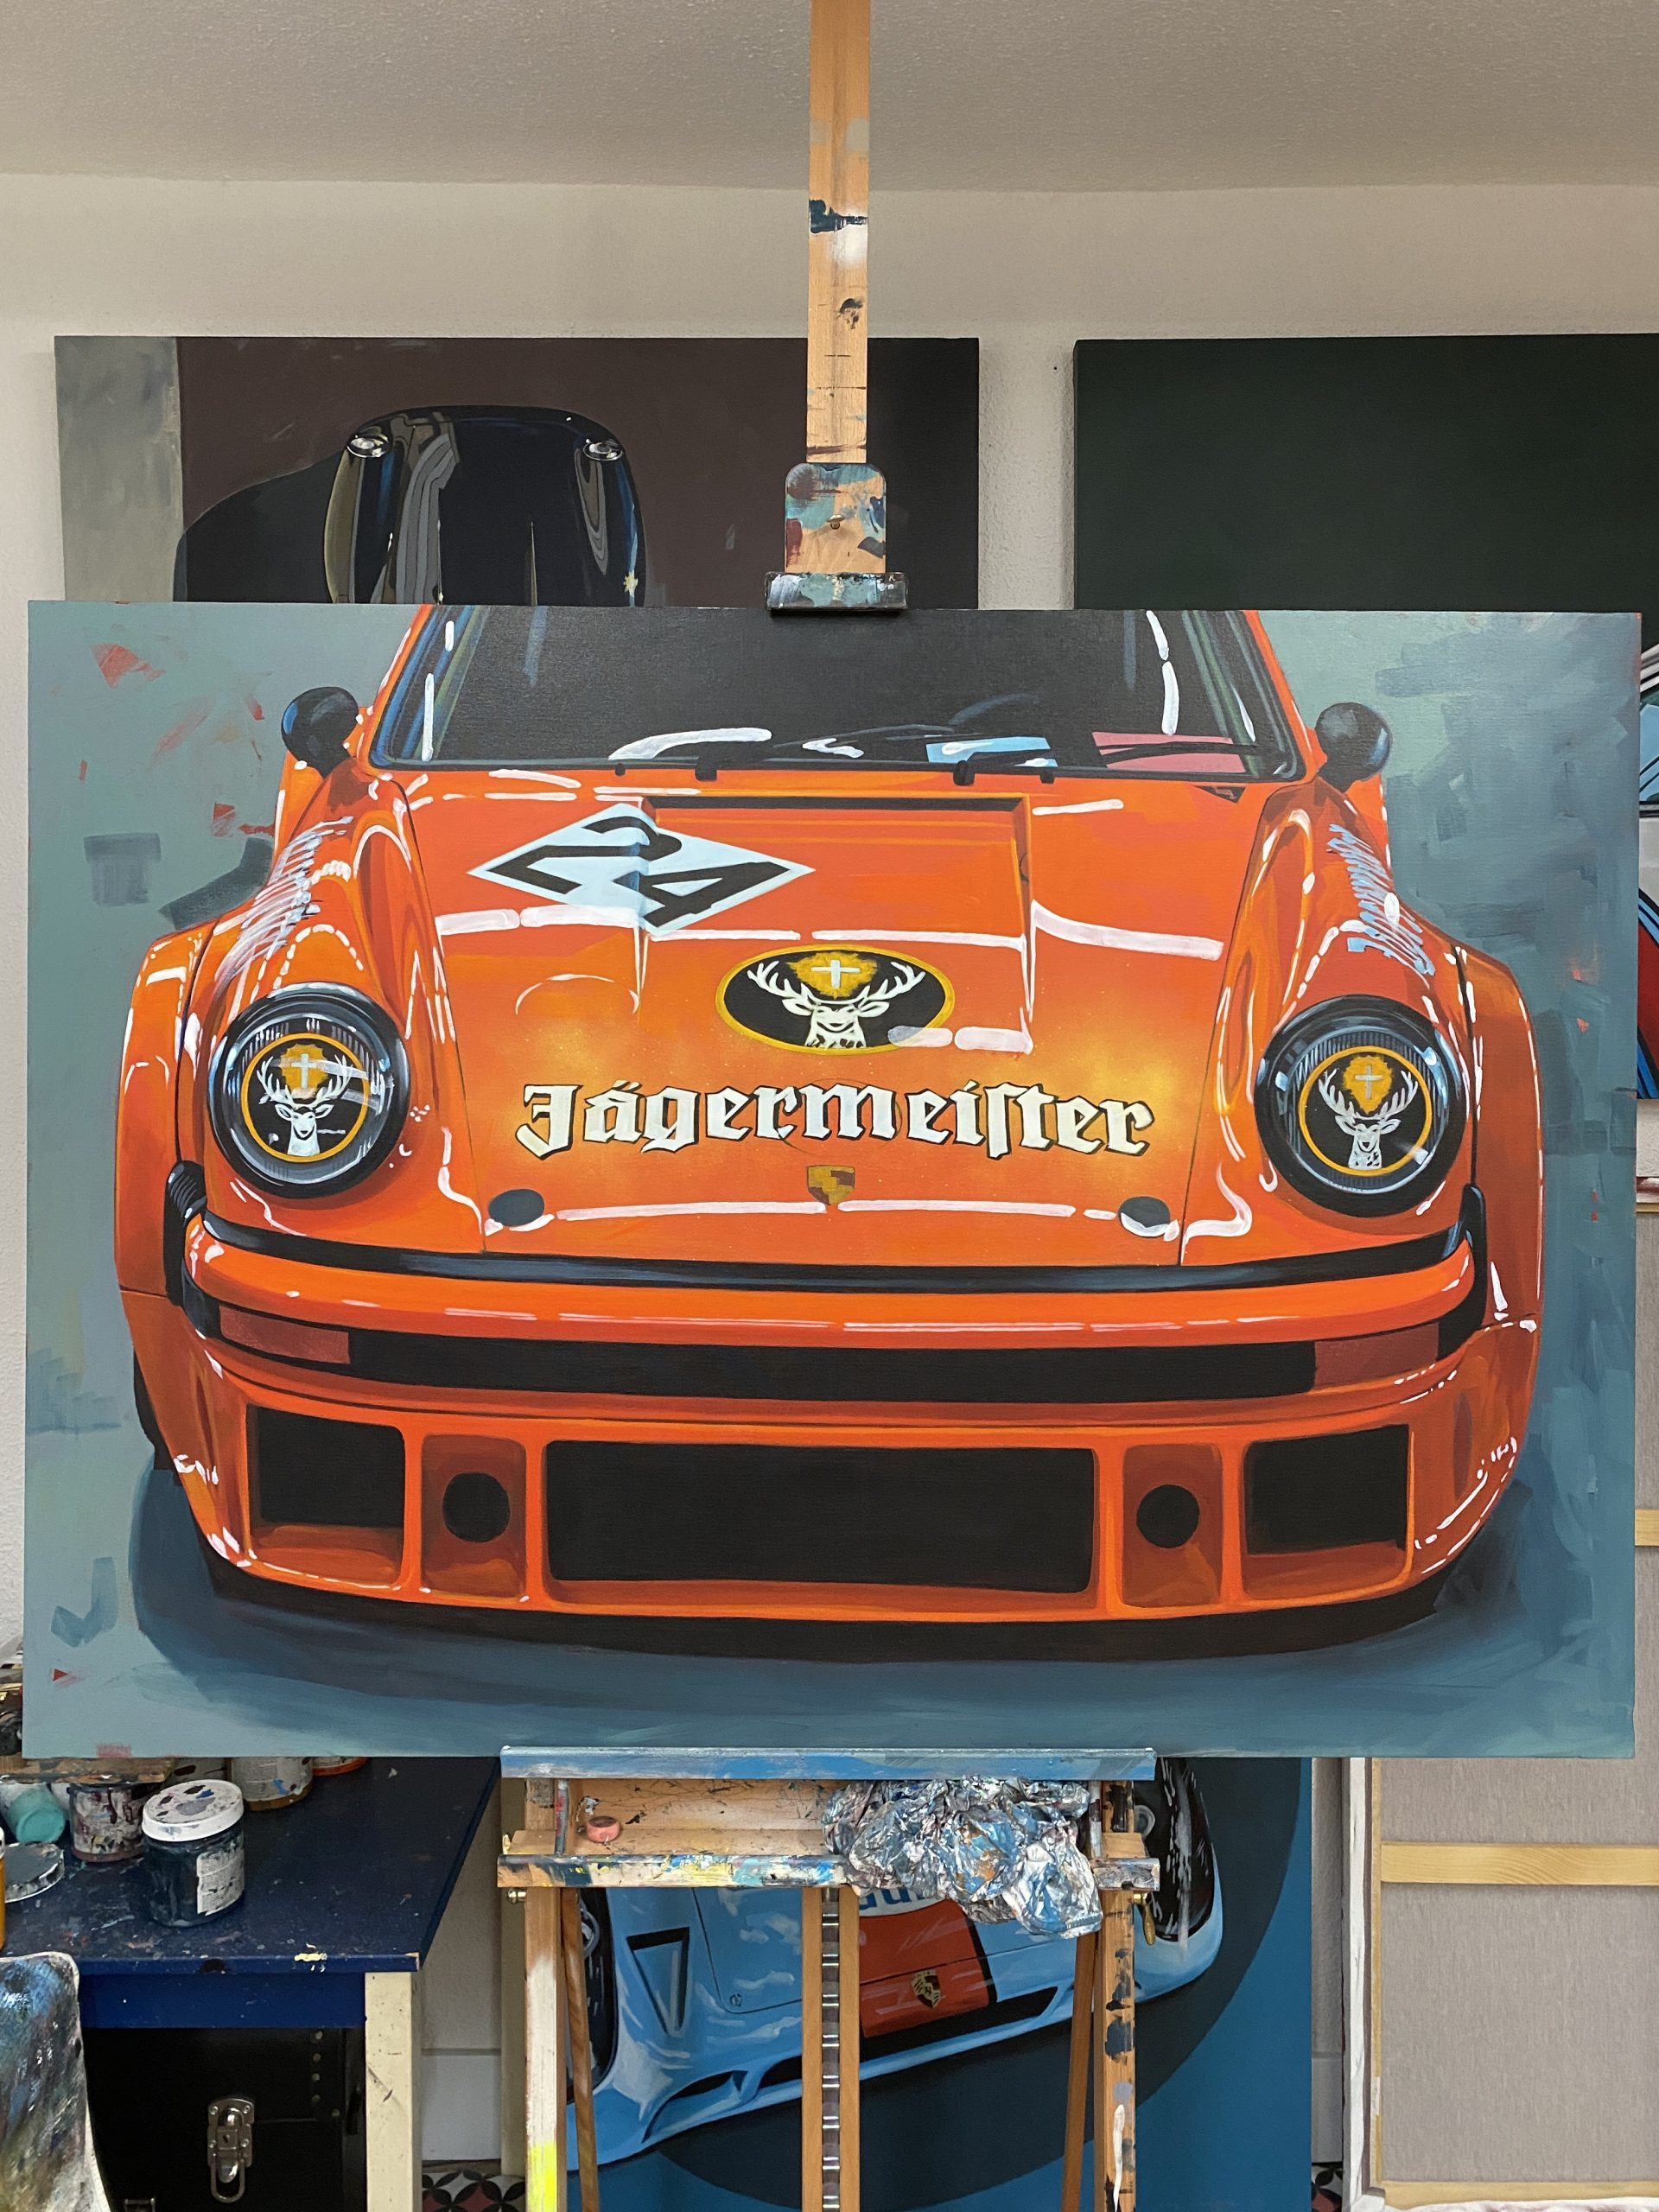 motorsport porsche graphic art painting in jagermeister livery